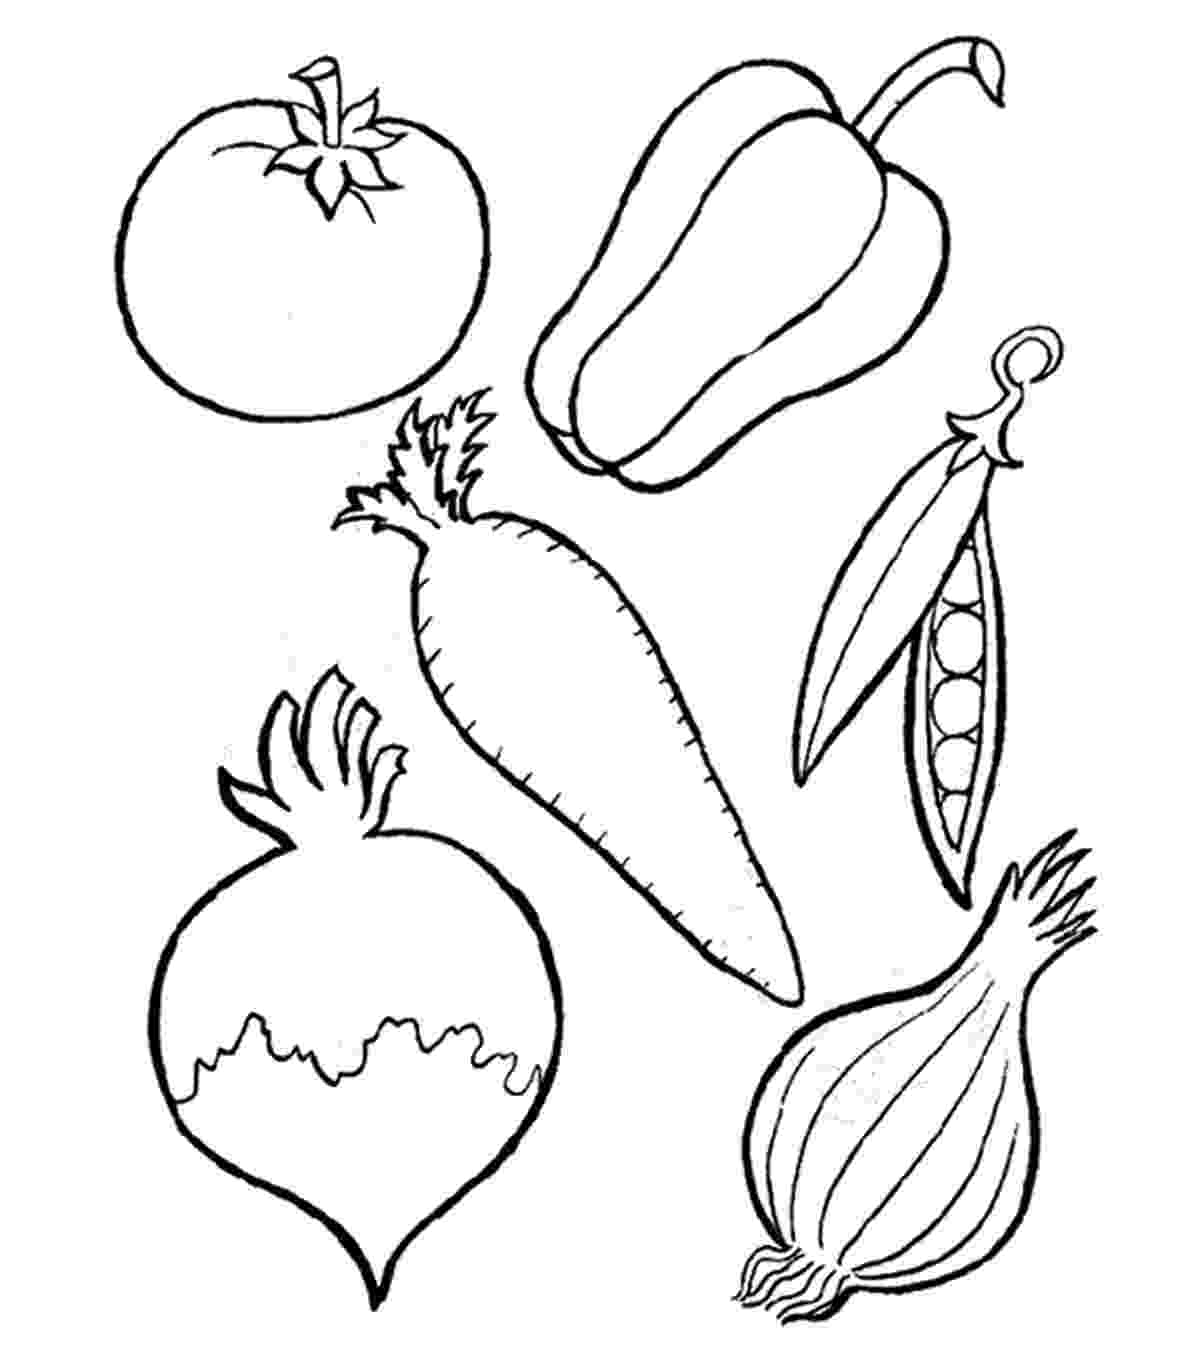 vegetables for colouring fruits and vegetables coloring pages momjunction for colouring vegetables